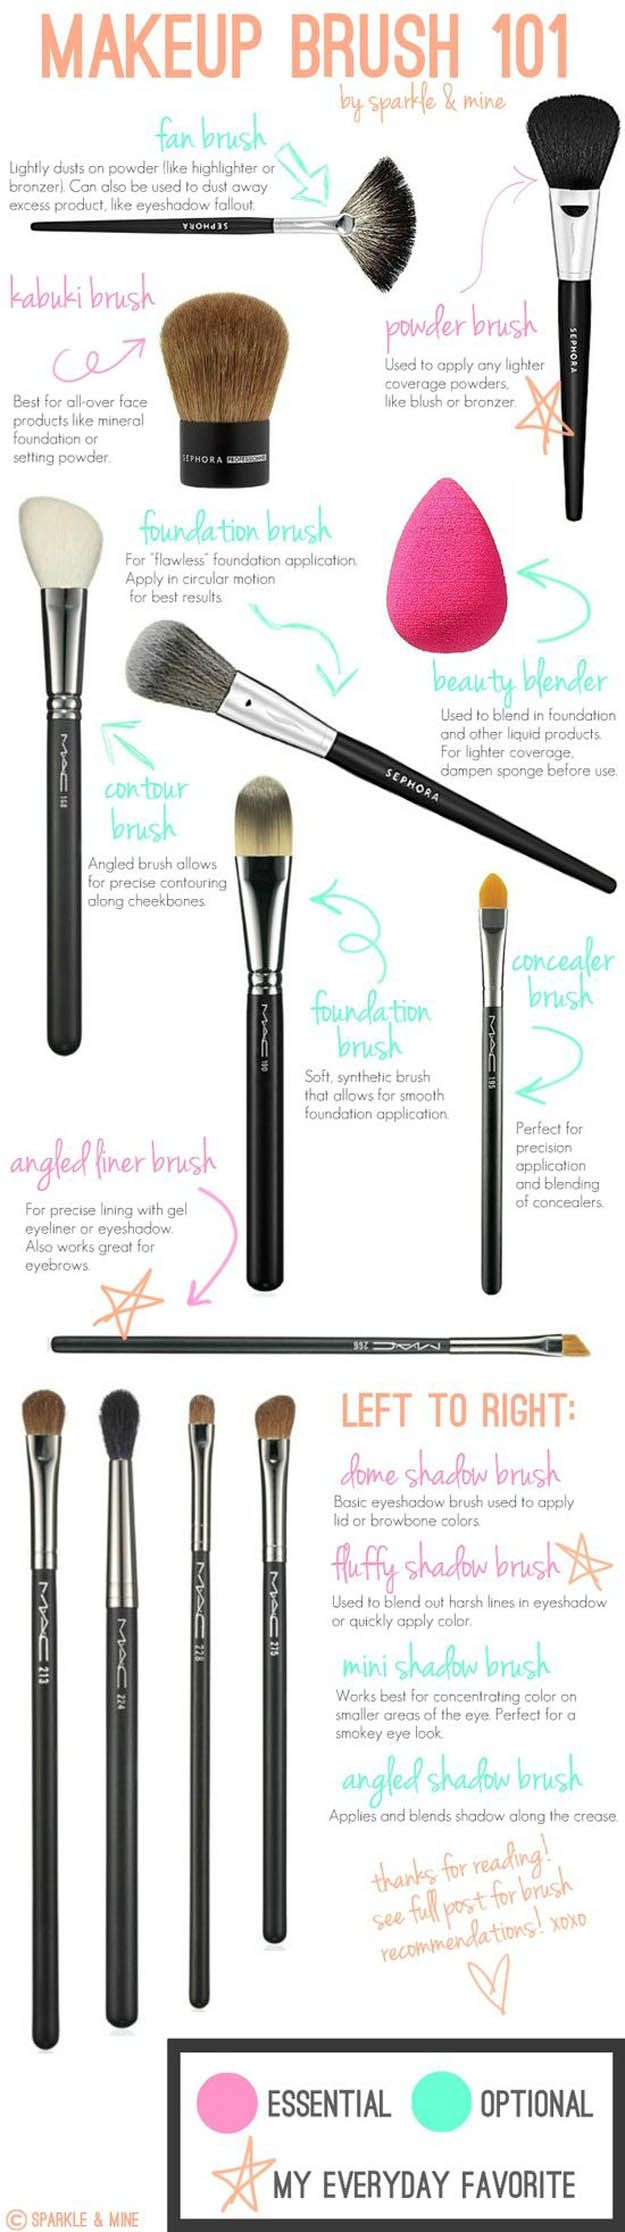 Best Makeup Tutorials from Around the Web - Page 6 of 6 - Trend To Wear